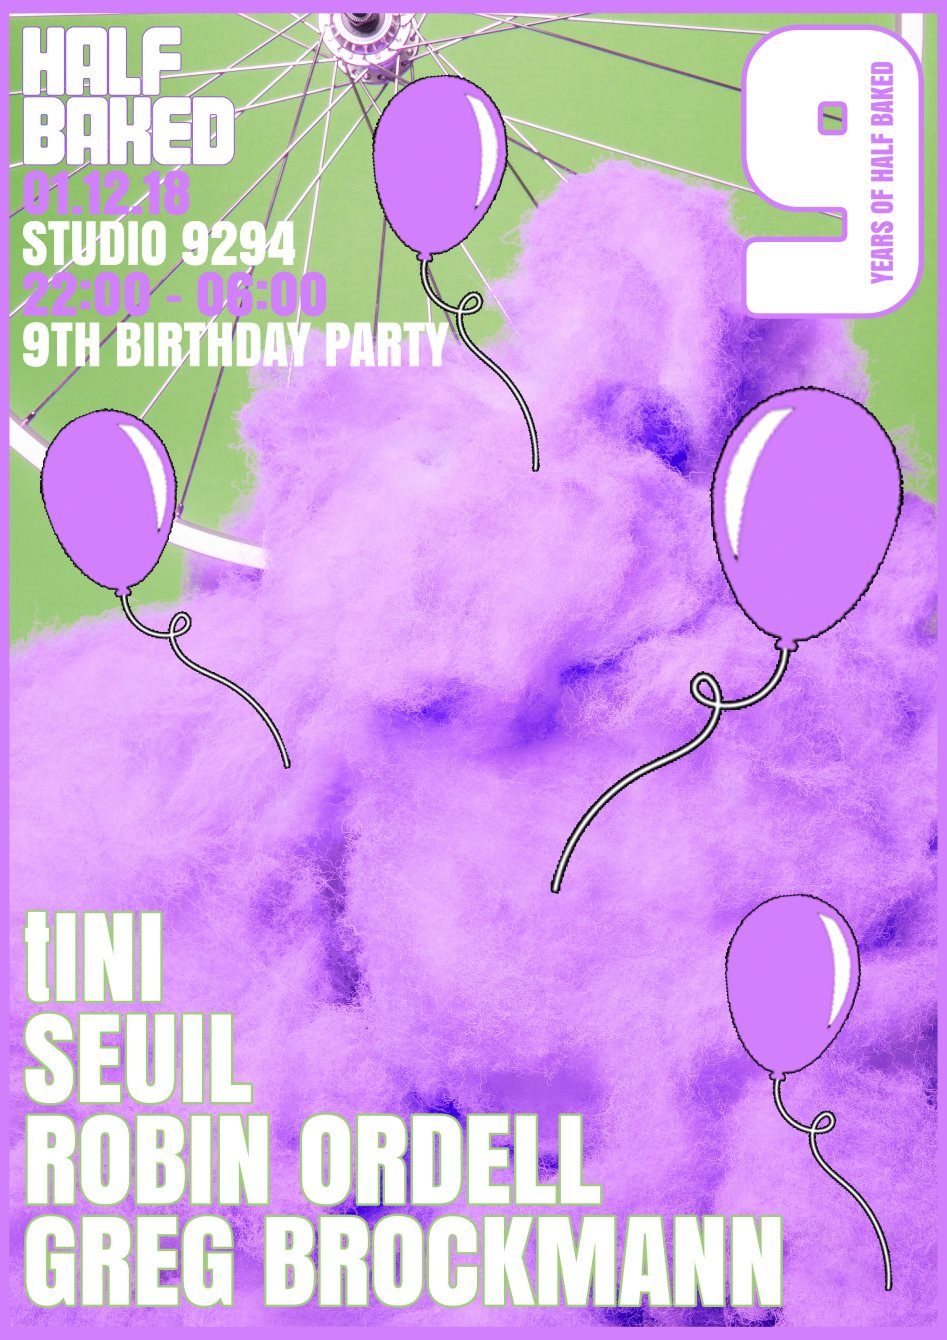 RA: Half Baked 9 Years of Love with tINI & Seuil at Studio 9294